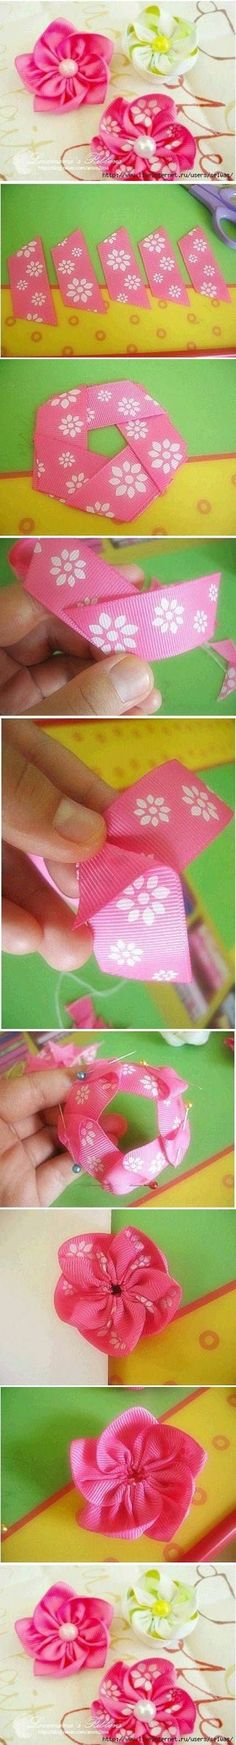 DIY Tape Flowers